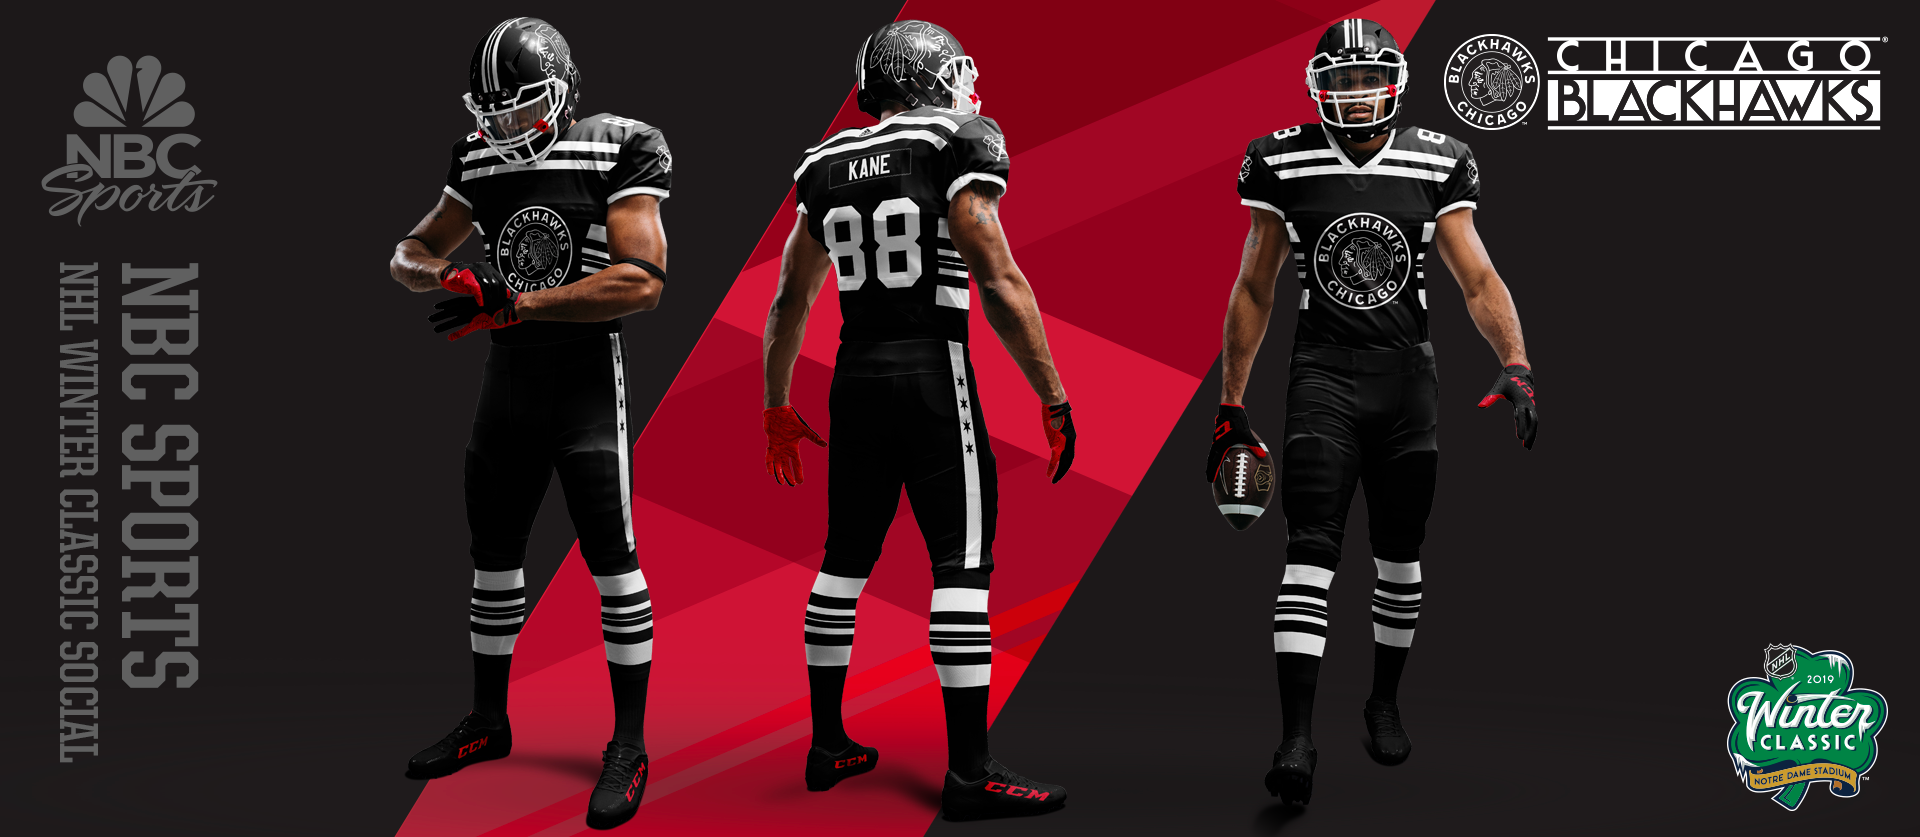 NHL Winter Classic - Chicago Football Uniforms